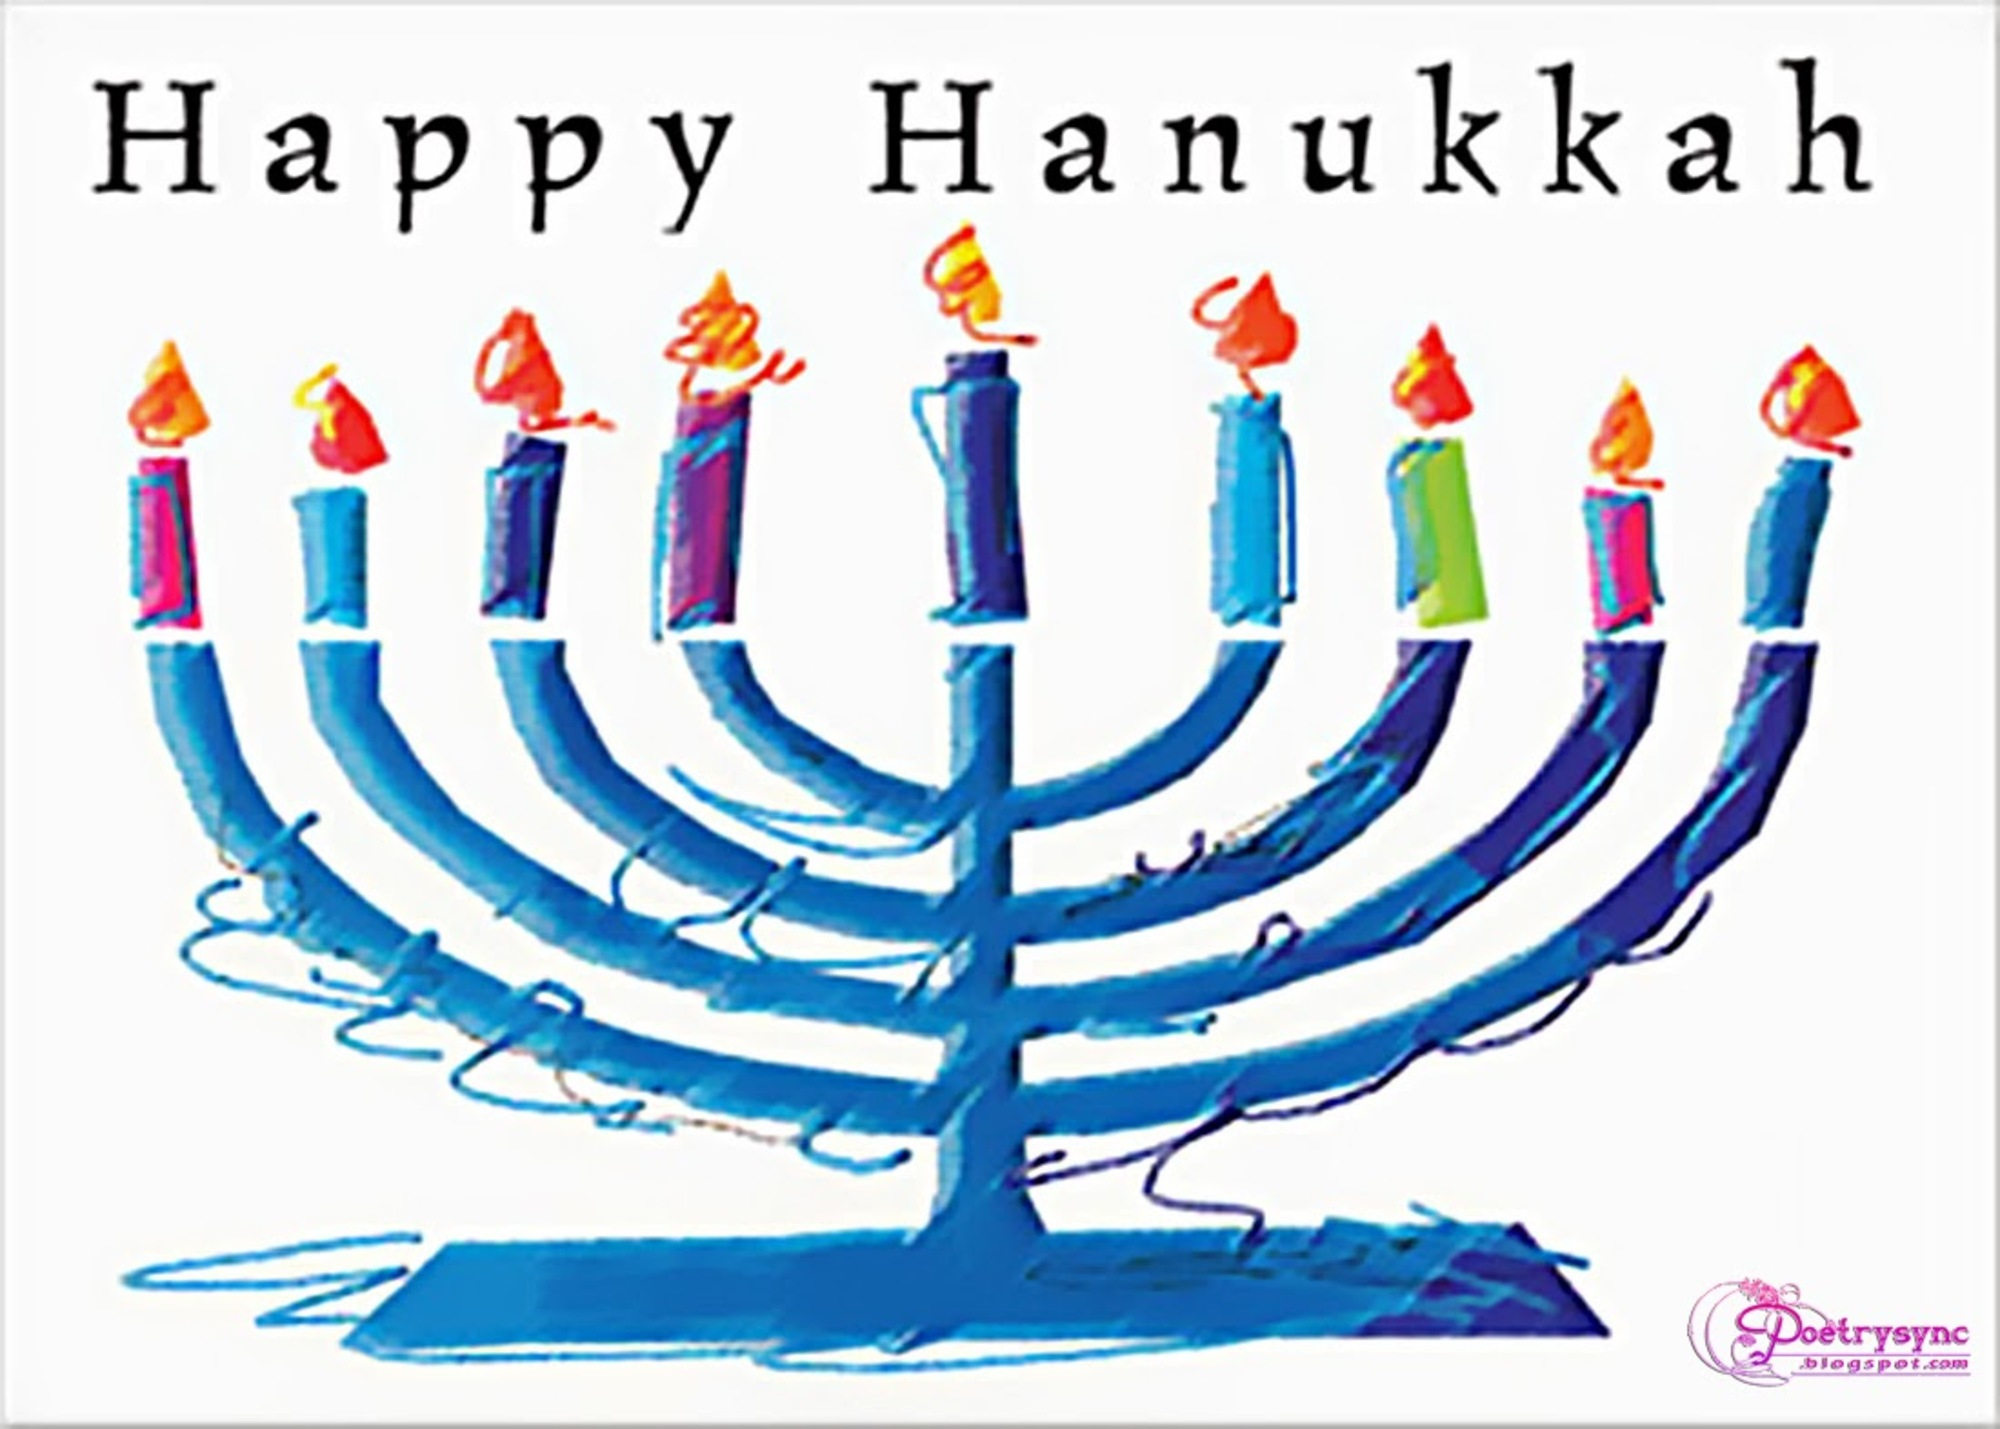 Is stressful . 2017 clipart hanukkah